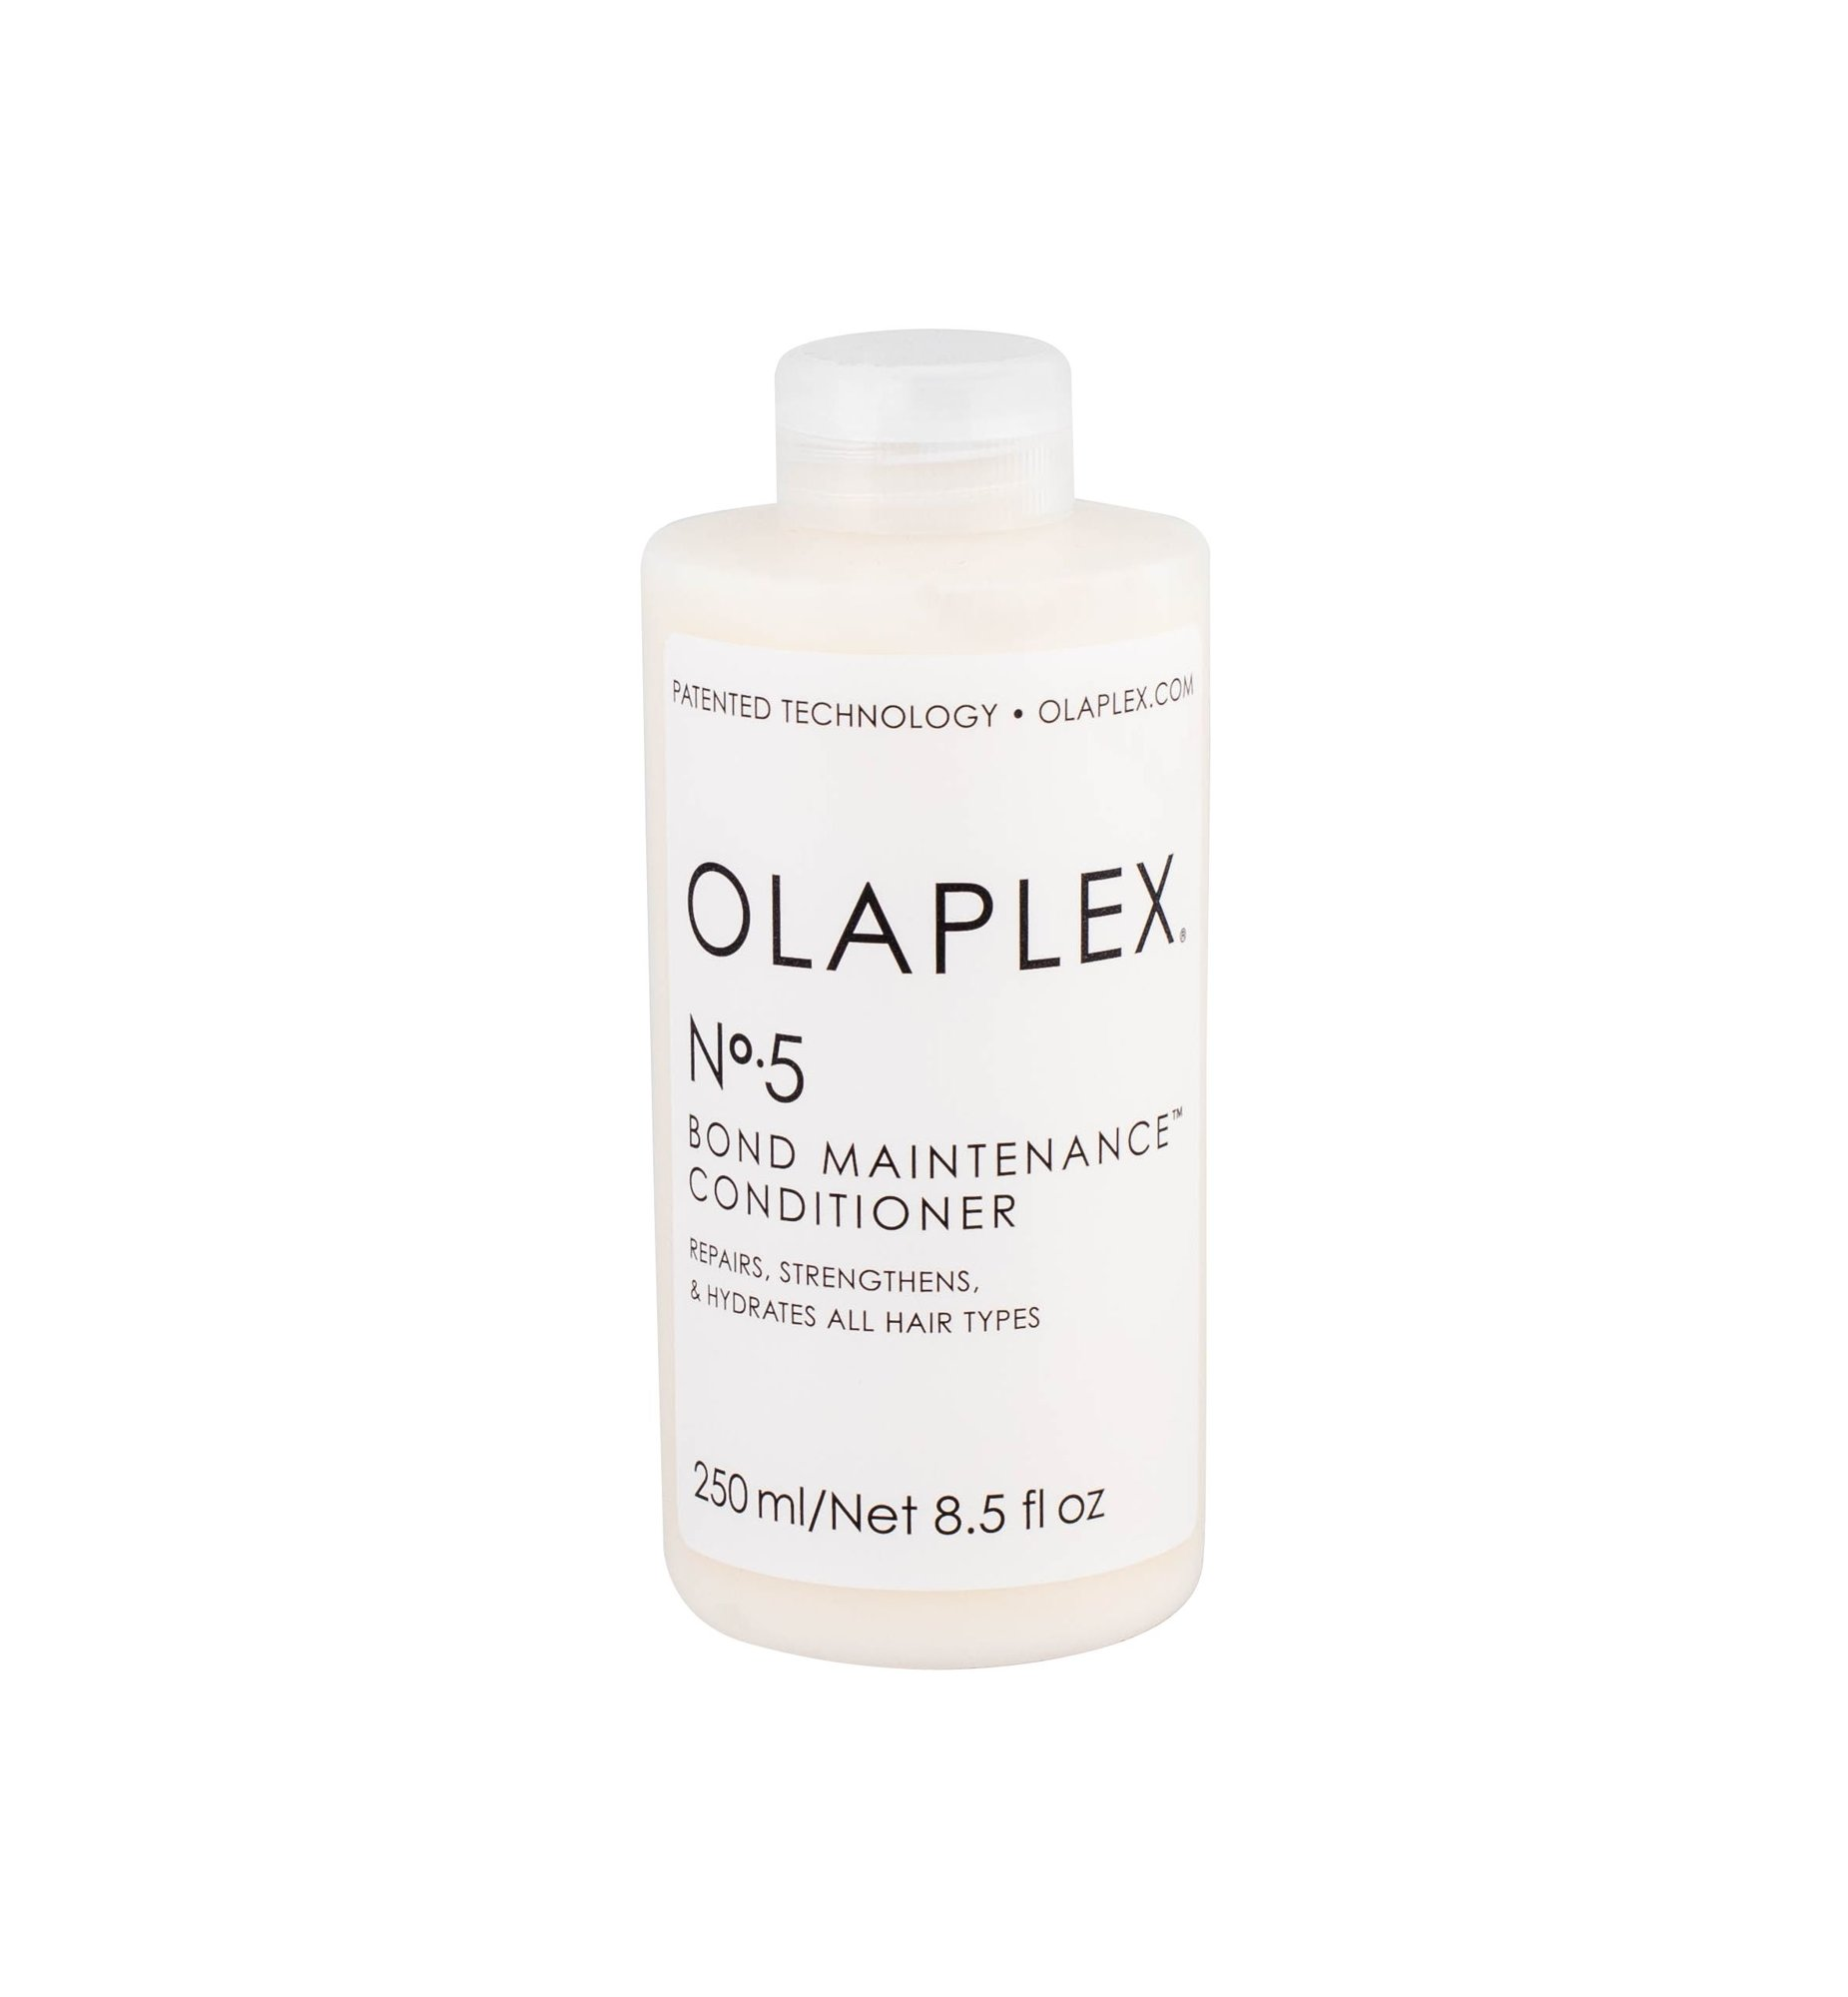 Olaplex Bond Maintenance Conditioner 250ml